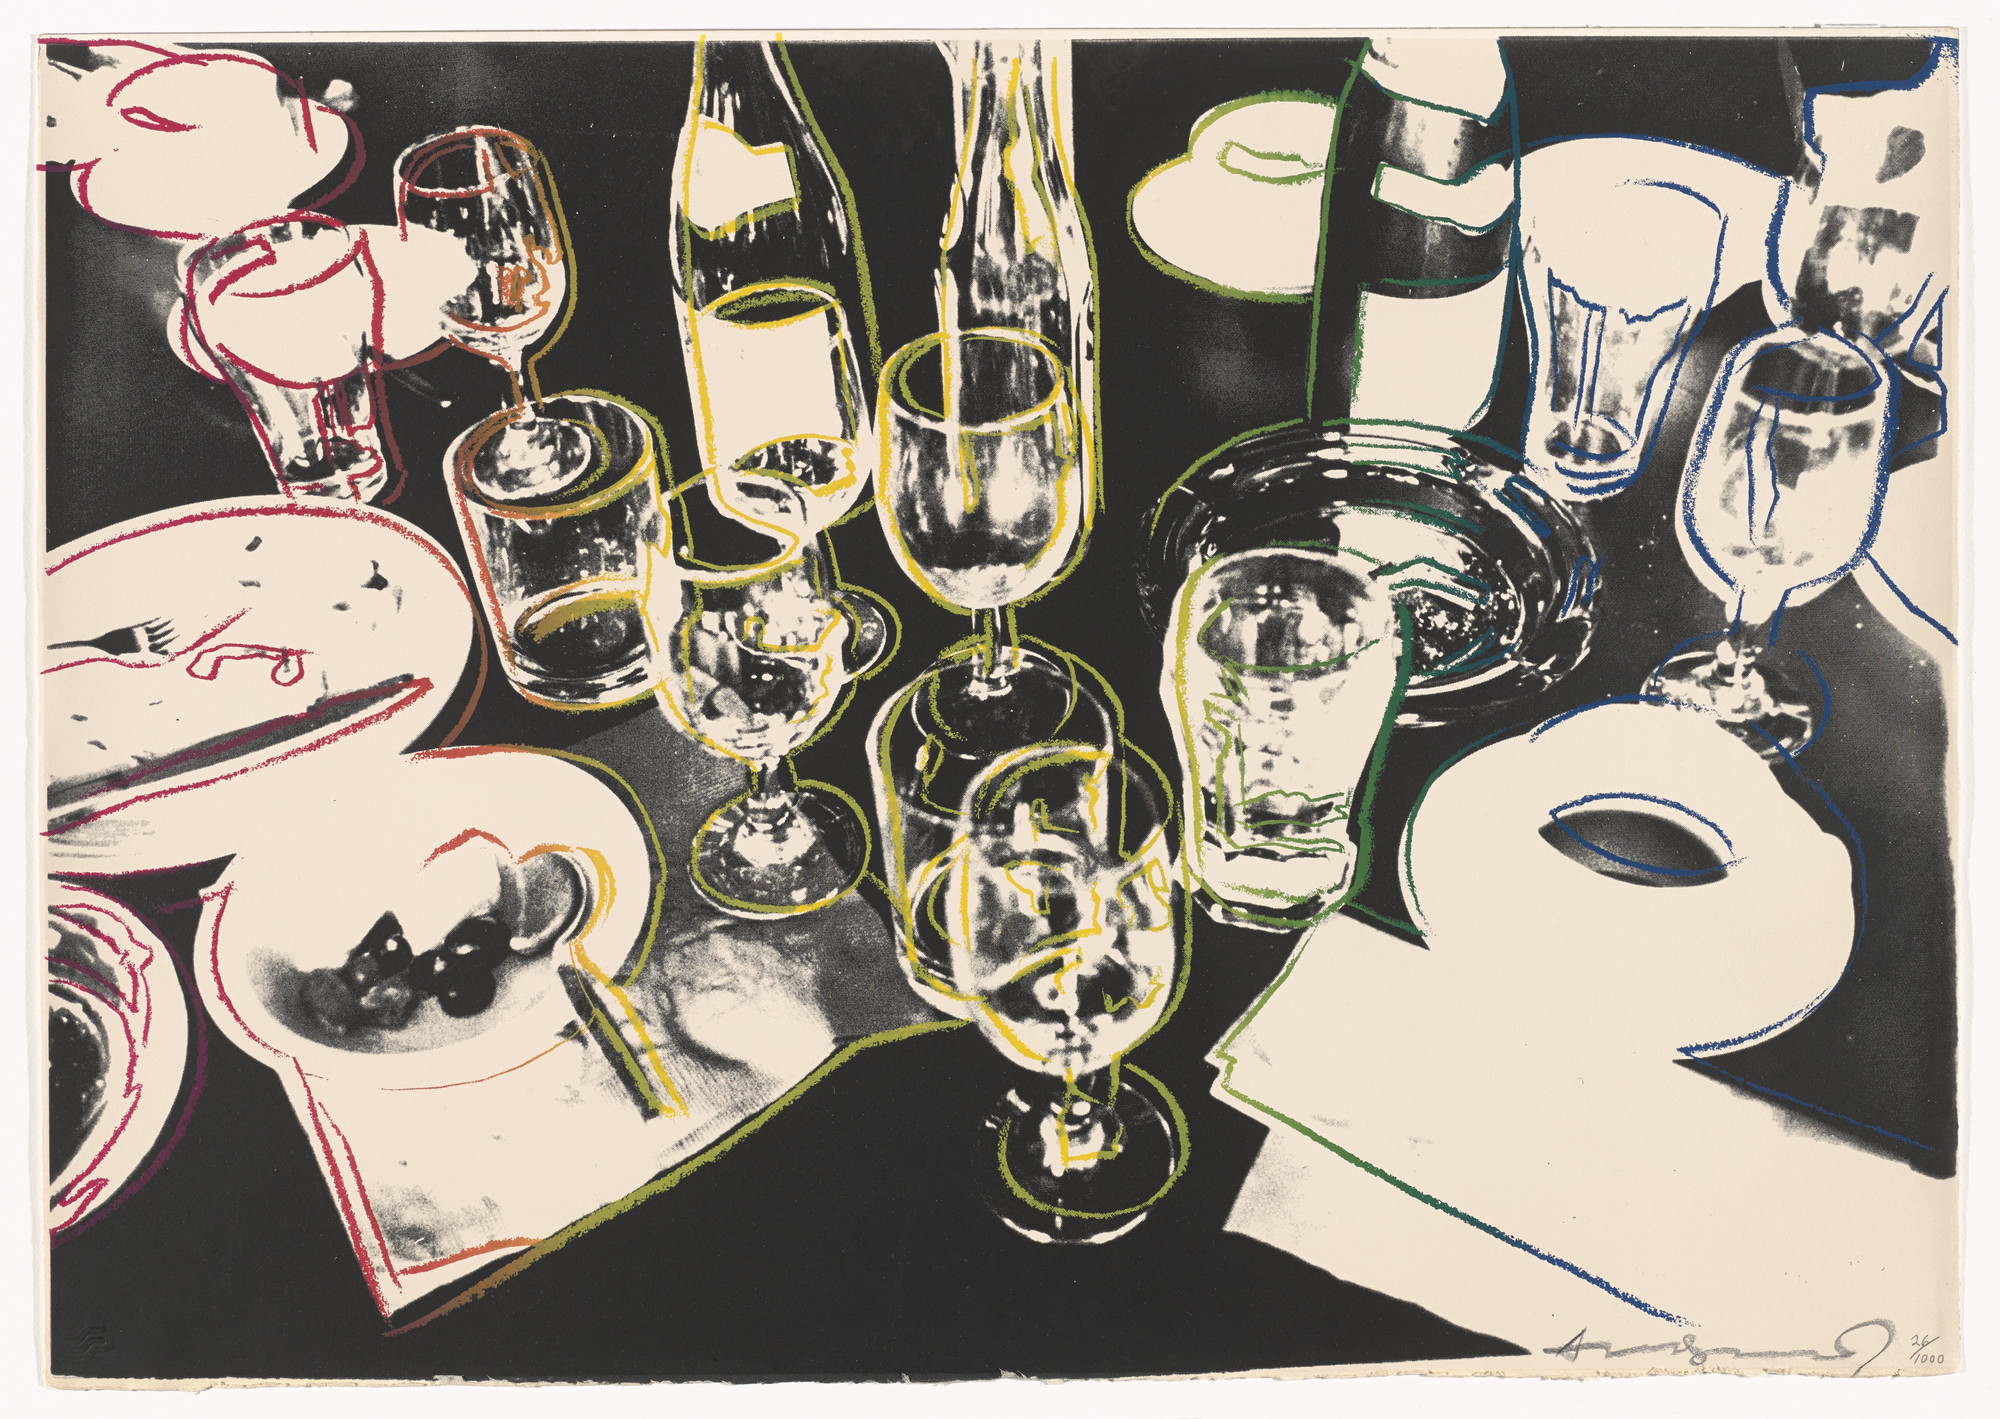 Andy Warhol. After the Party. 1979